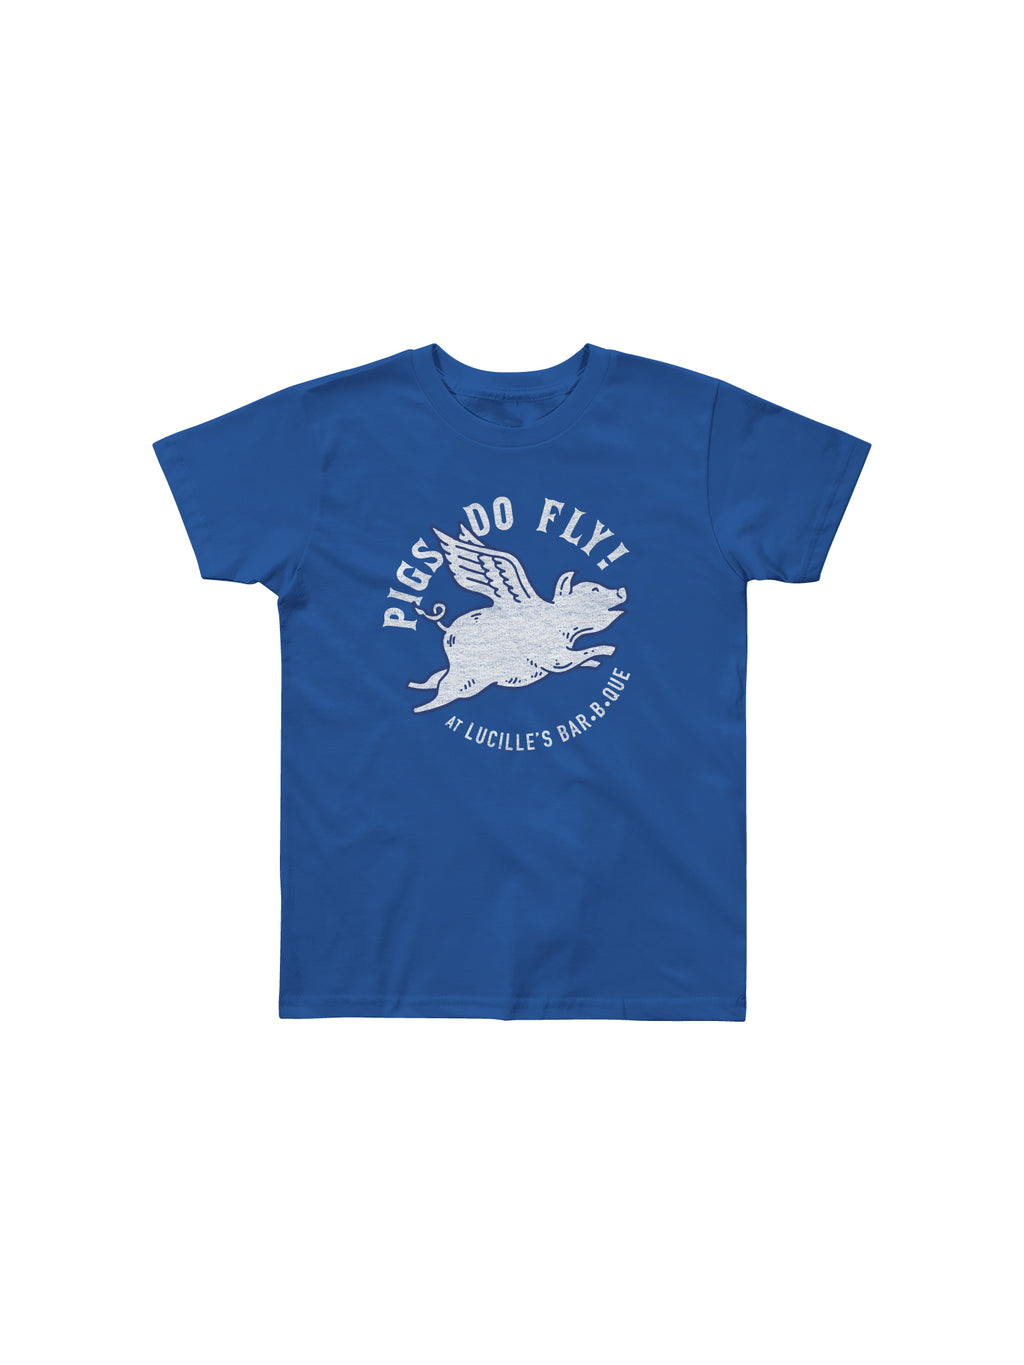 PIGS DO FLY YOUTH TSHIRT (ROYAL BLUE) - Anderson Bros Design and Supply